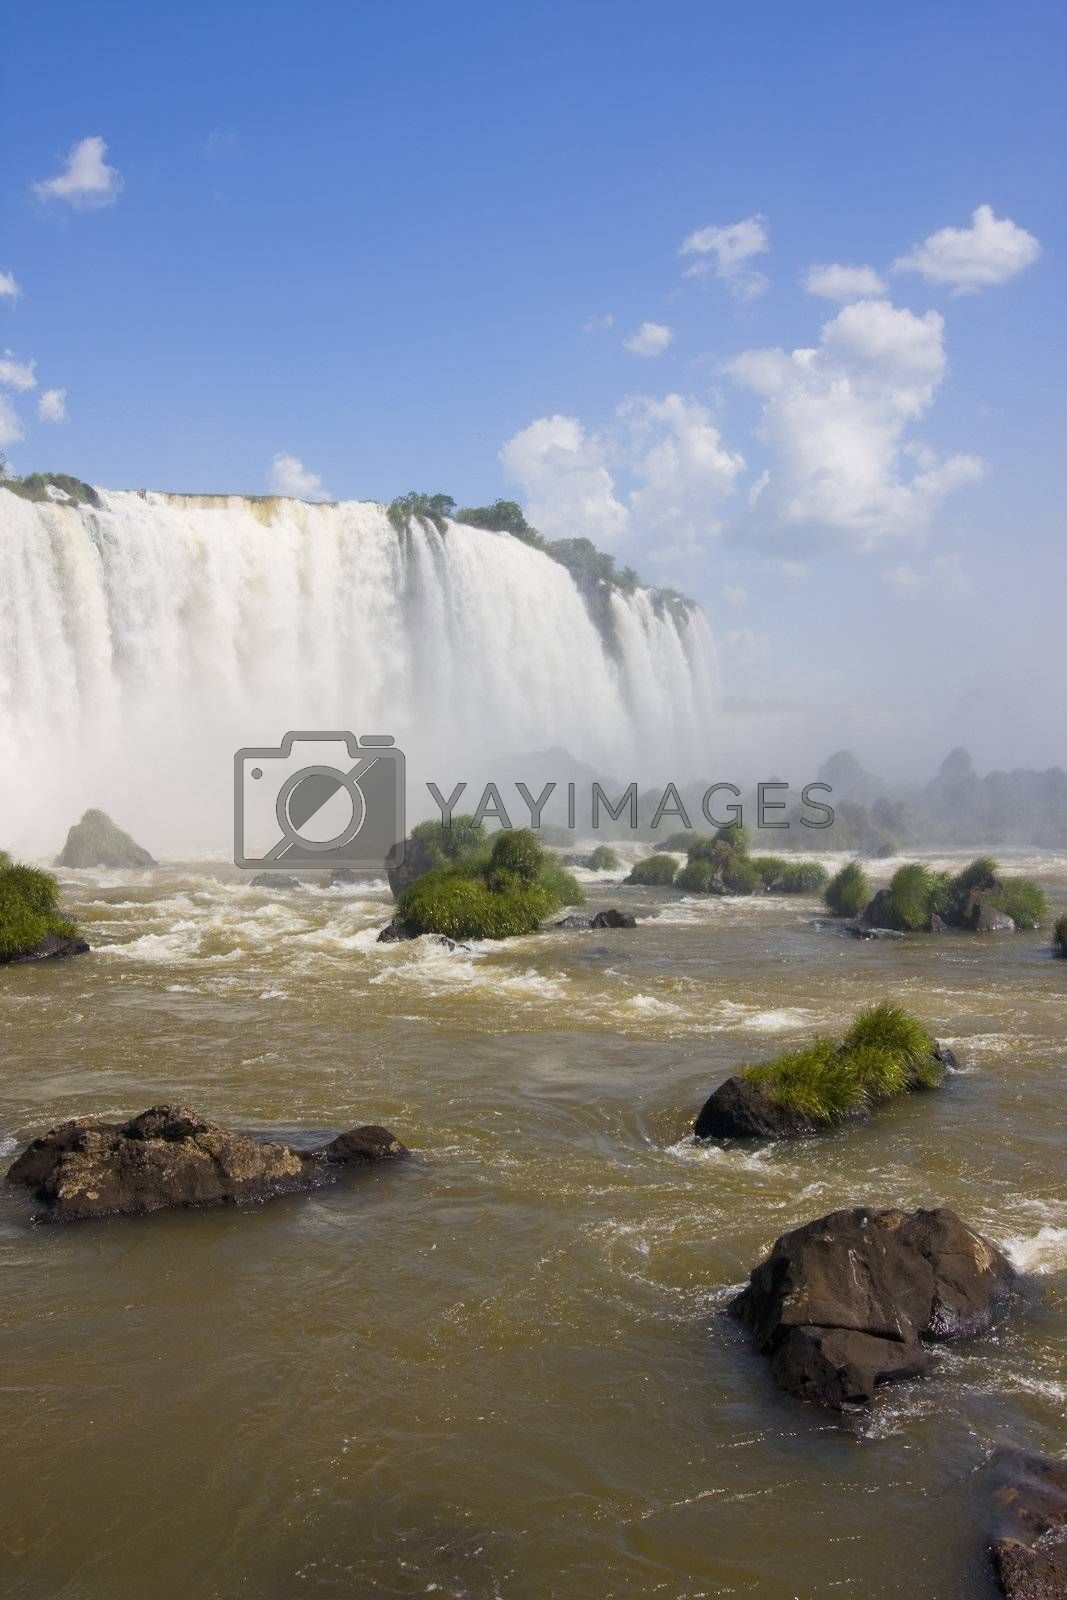 Part of the Iguassu falls on the brazilian side